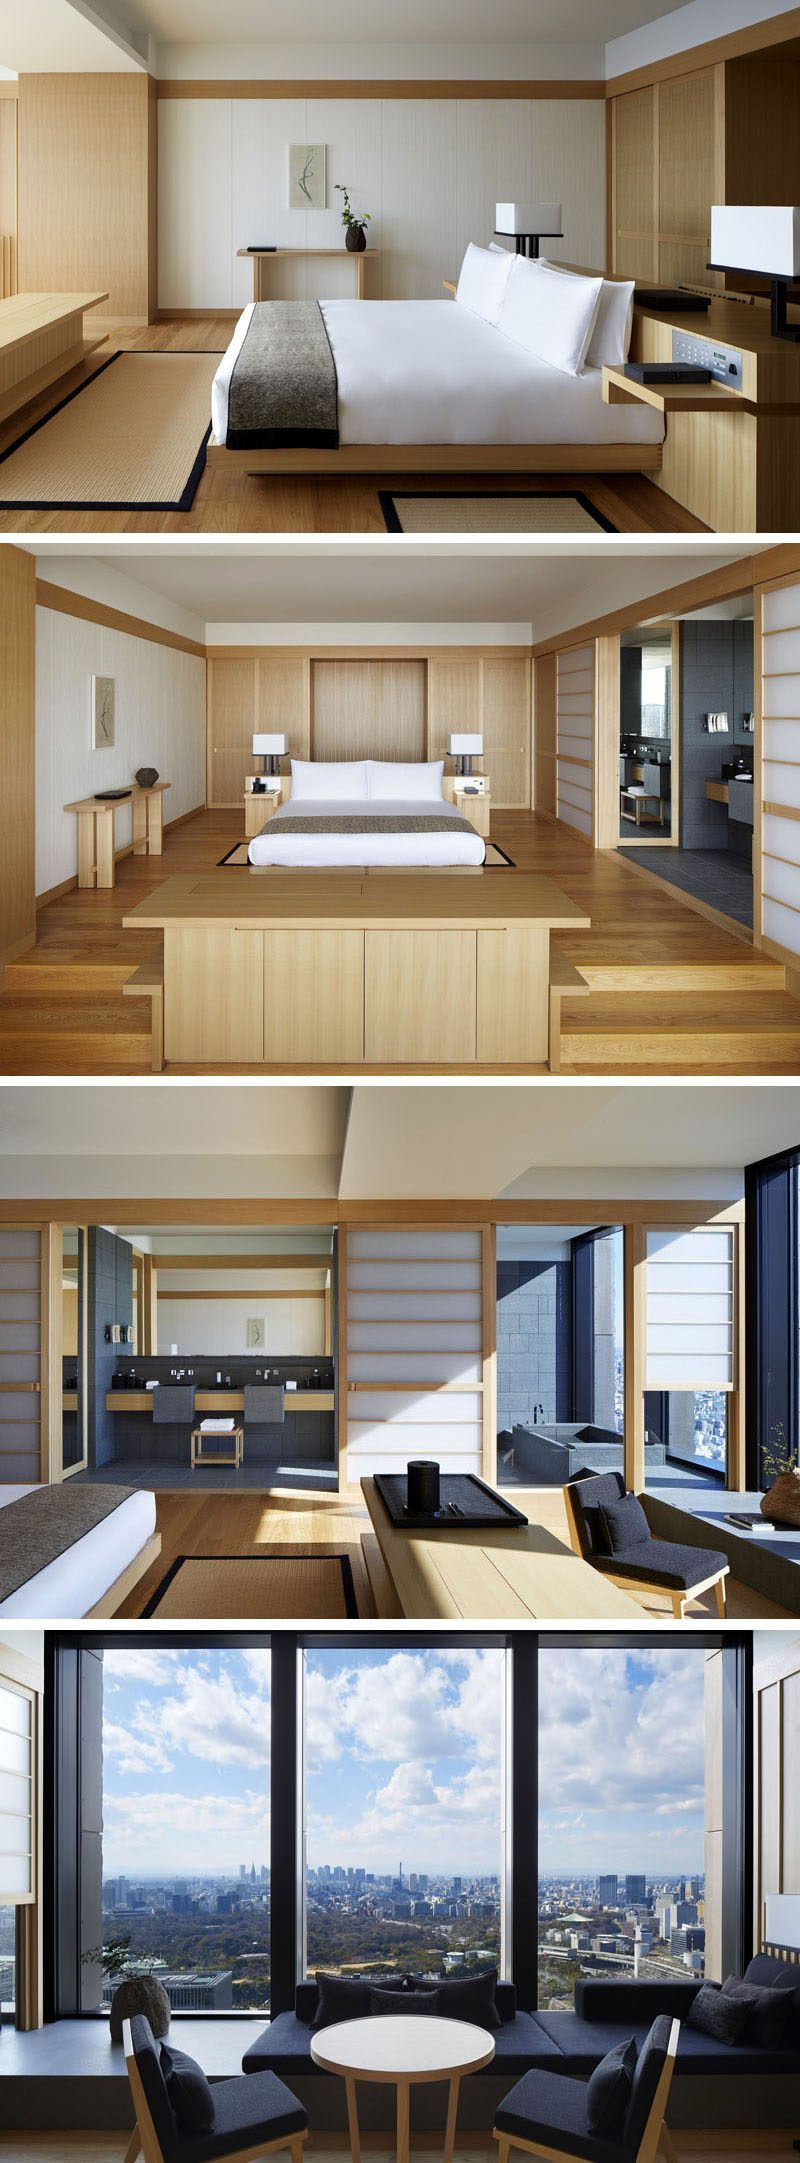 Design Bedroom Apartments Outdoor Style Restaurant Home Wood Slats Decor Small Spaces Apartment Interior Apartment Interior Design Contemporary Interior Design